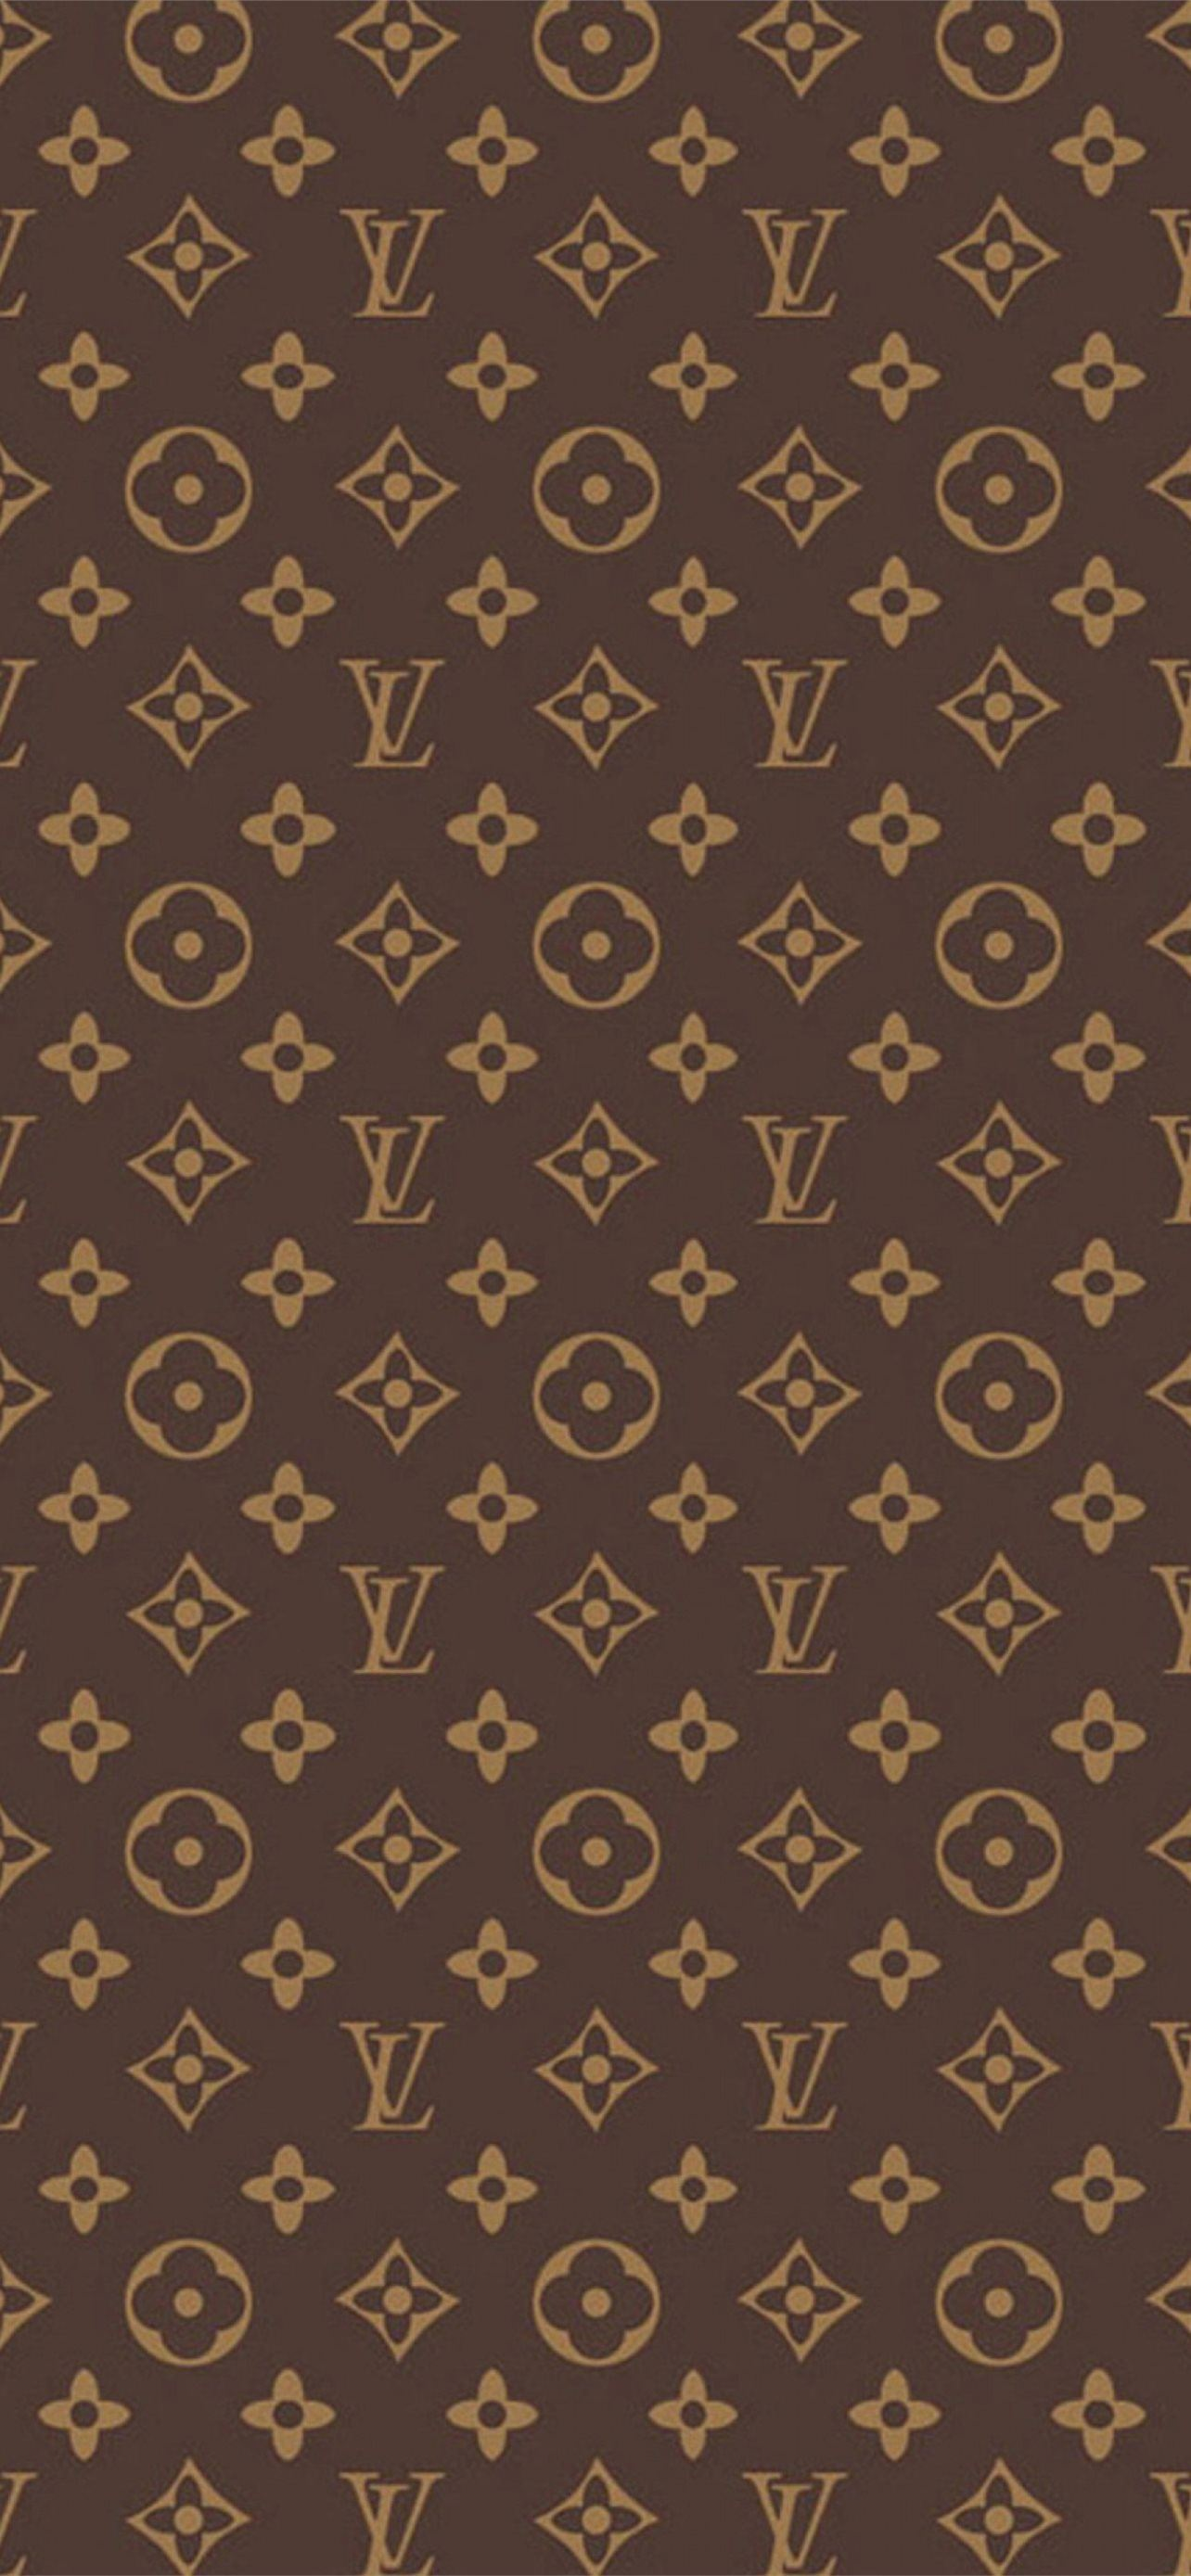 Coco Chanel Posted By Sarah Mercado Iphone Wallpapers Free Download